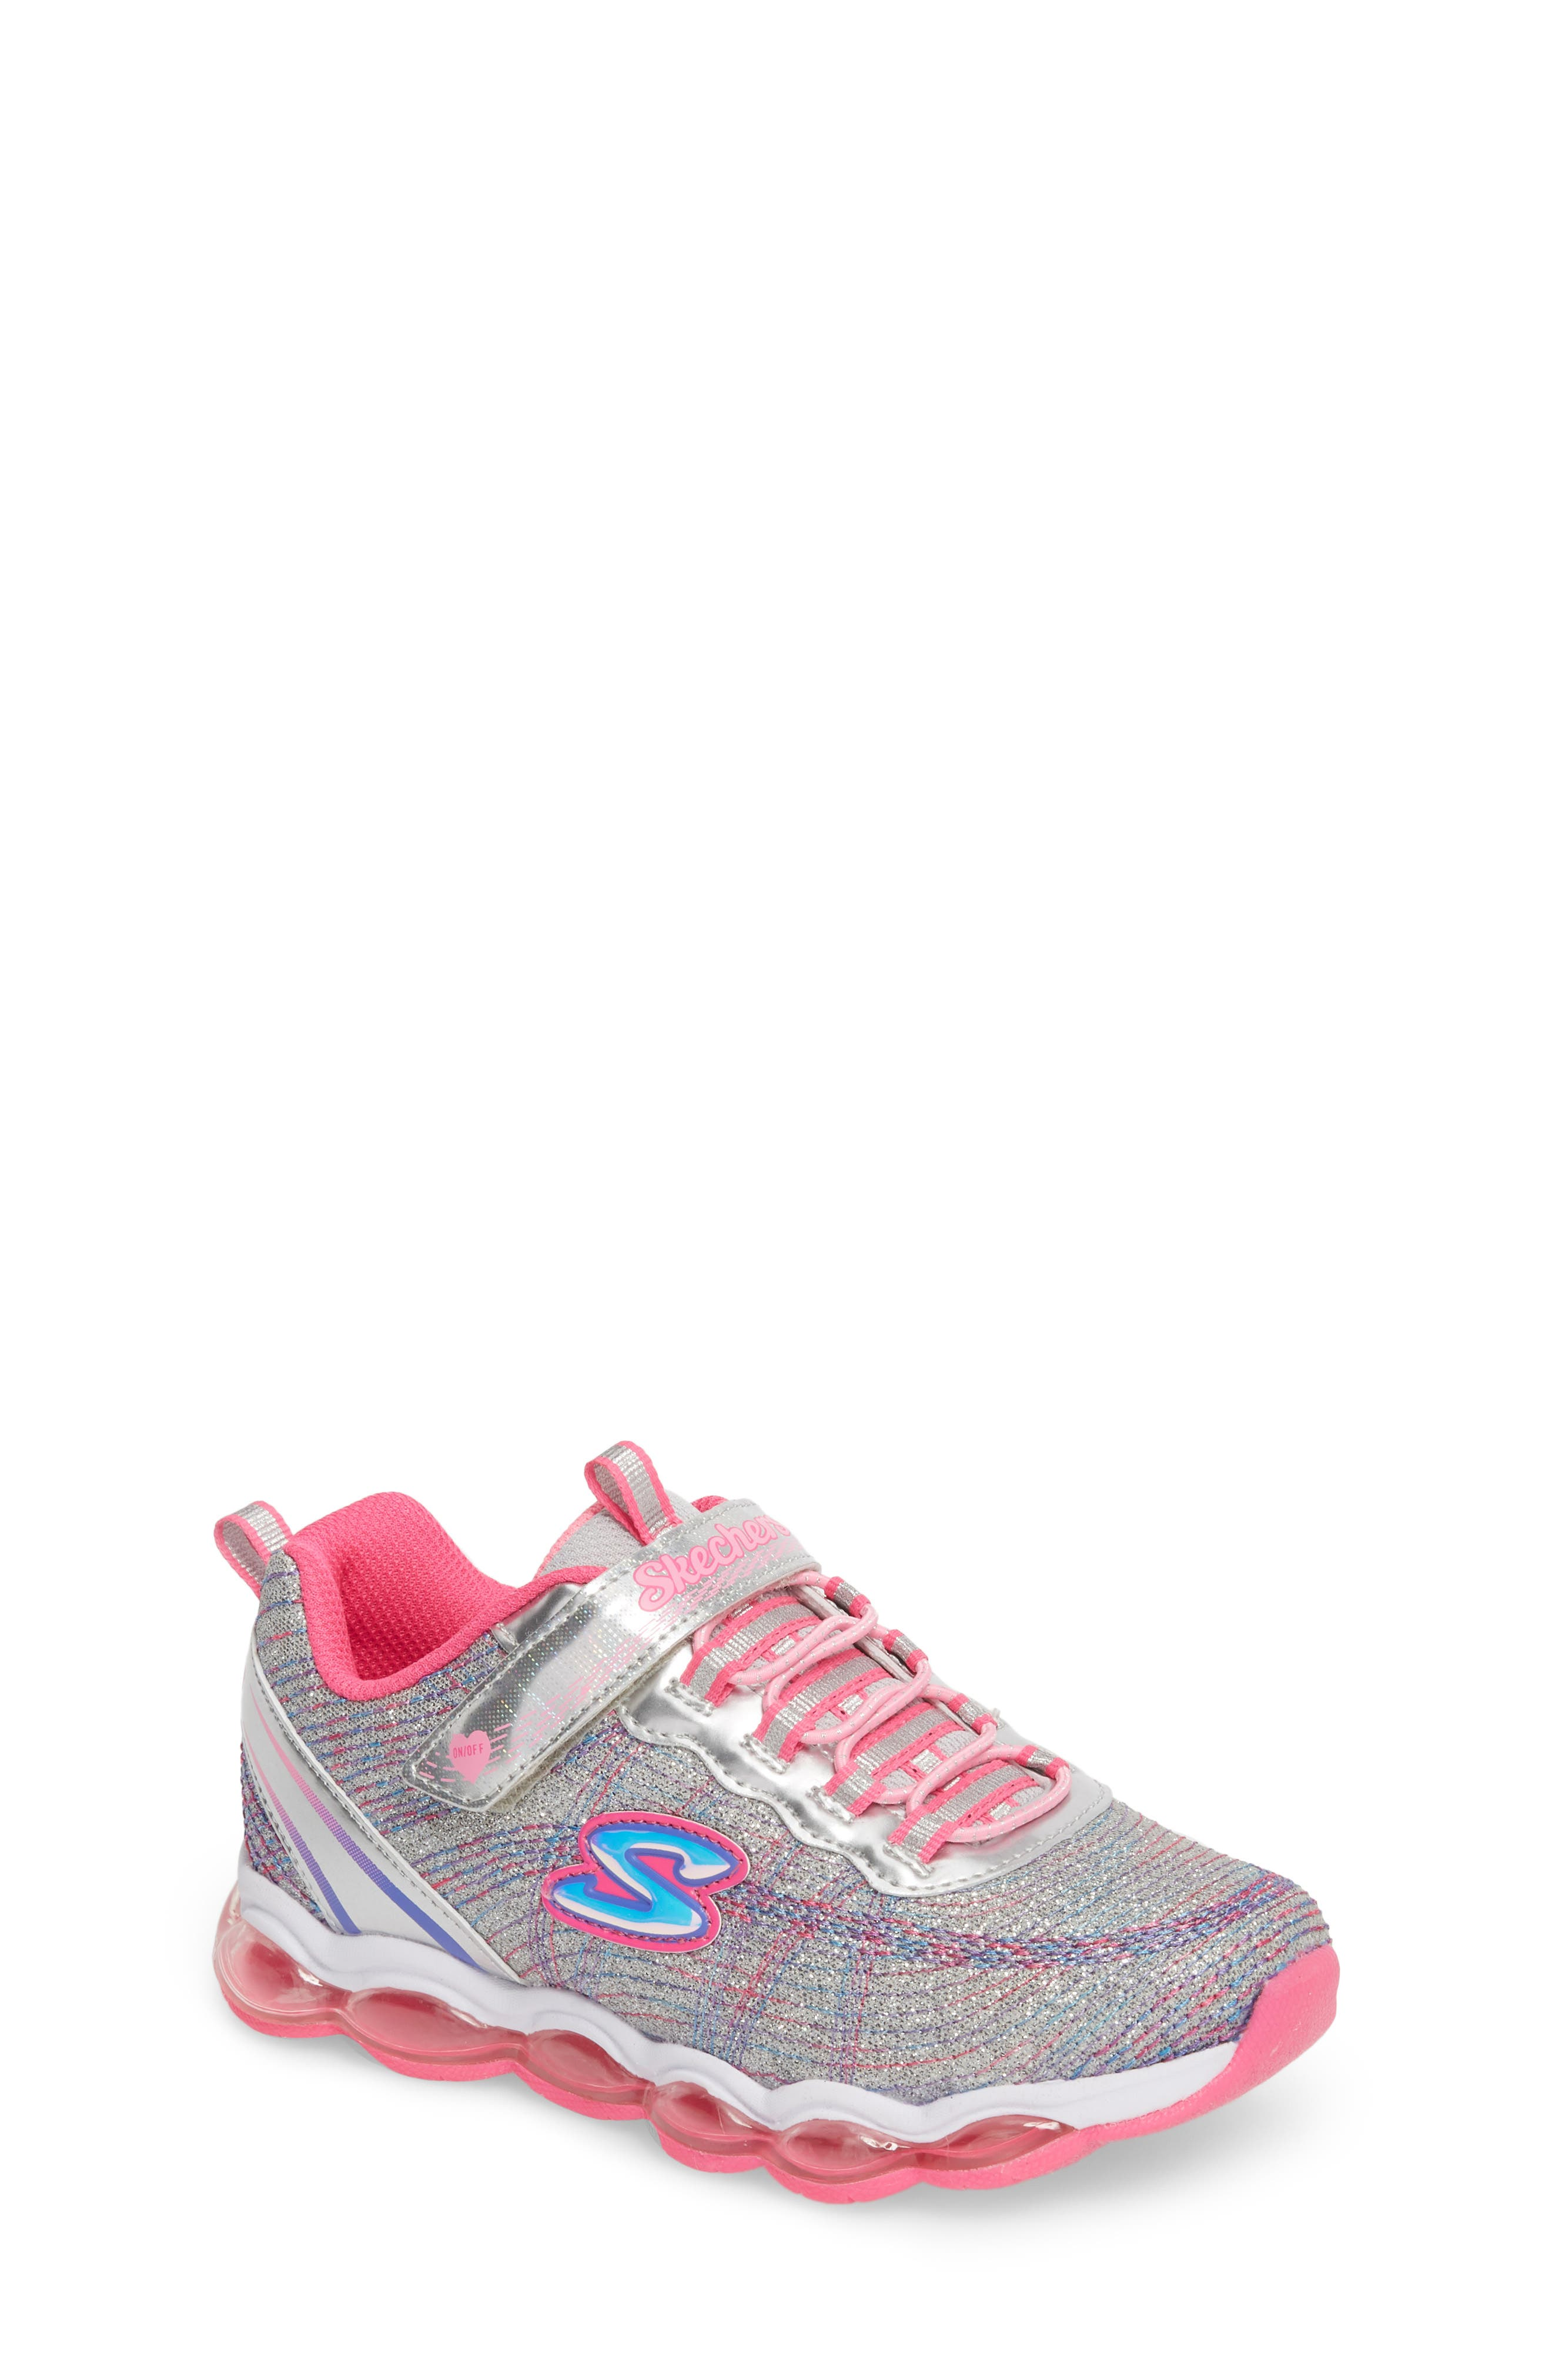 SKECHERS Glimmer Lights Sneakers (Toddler & Little Kid)